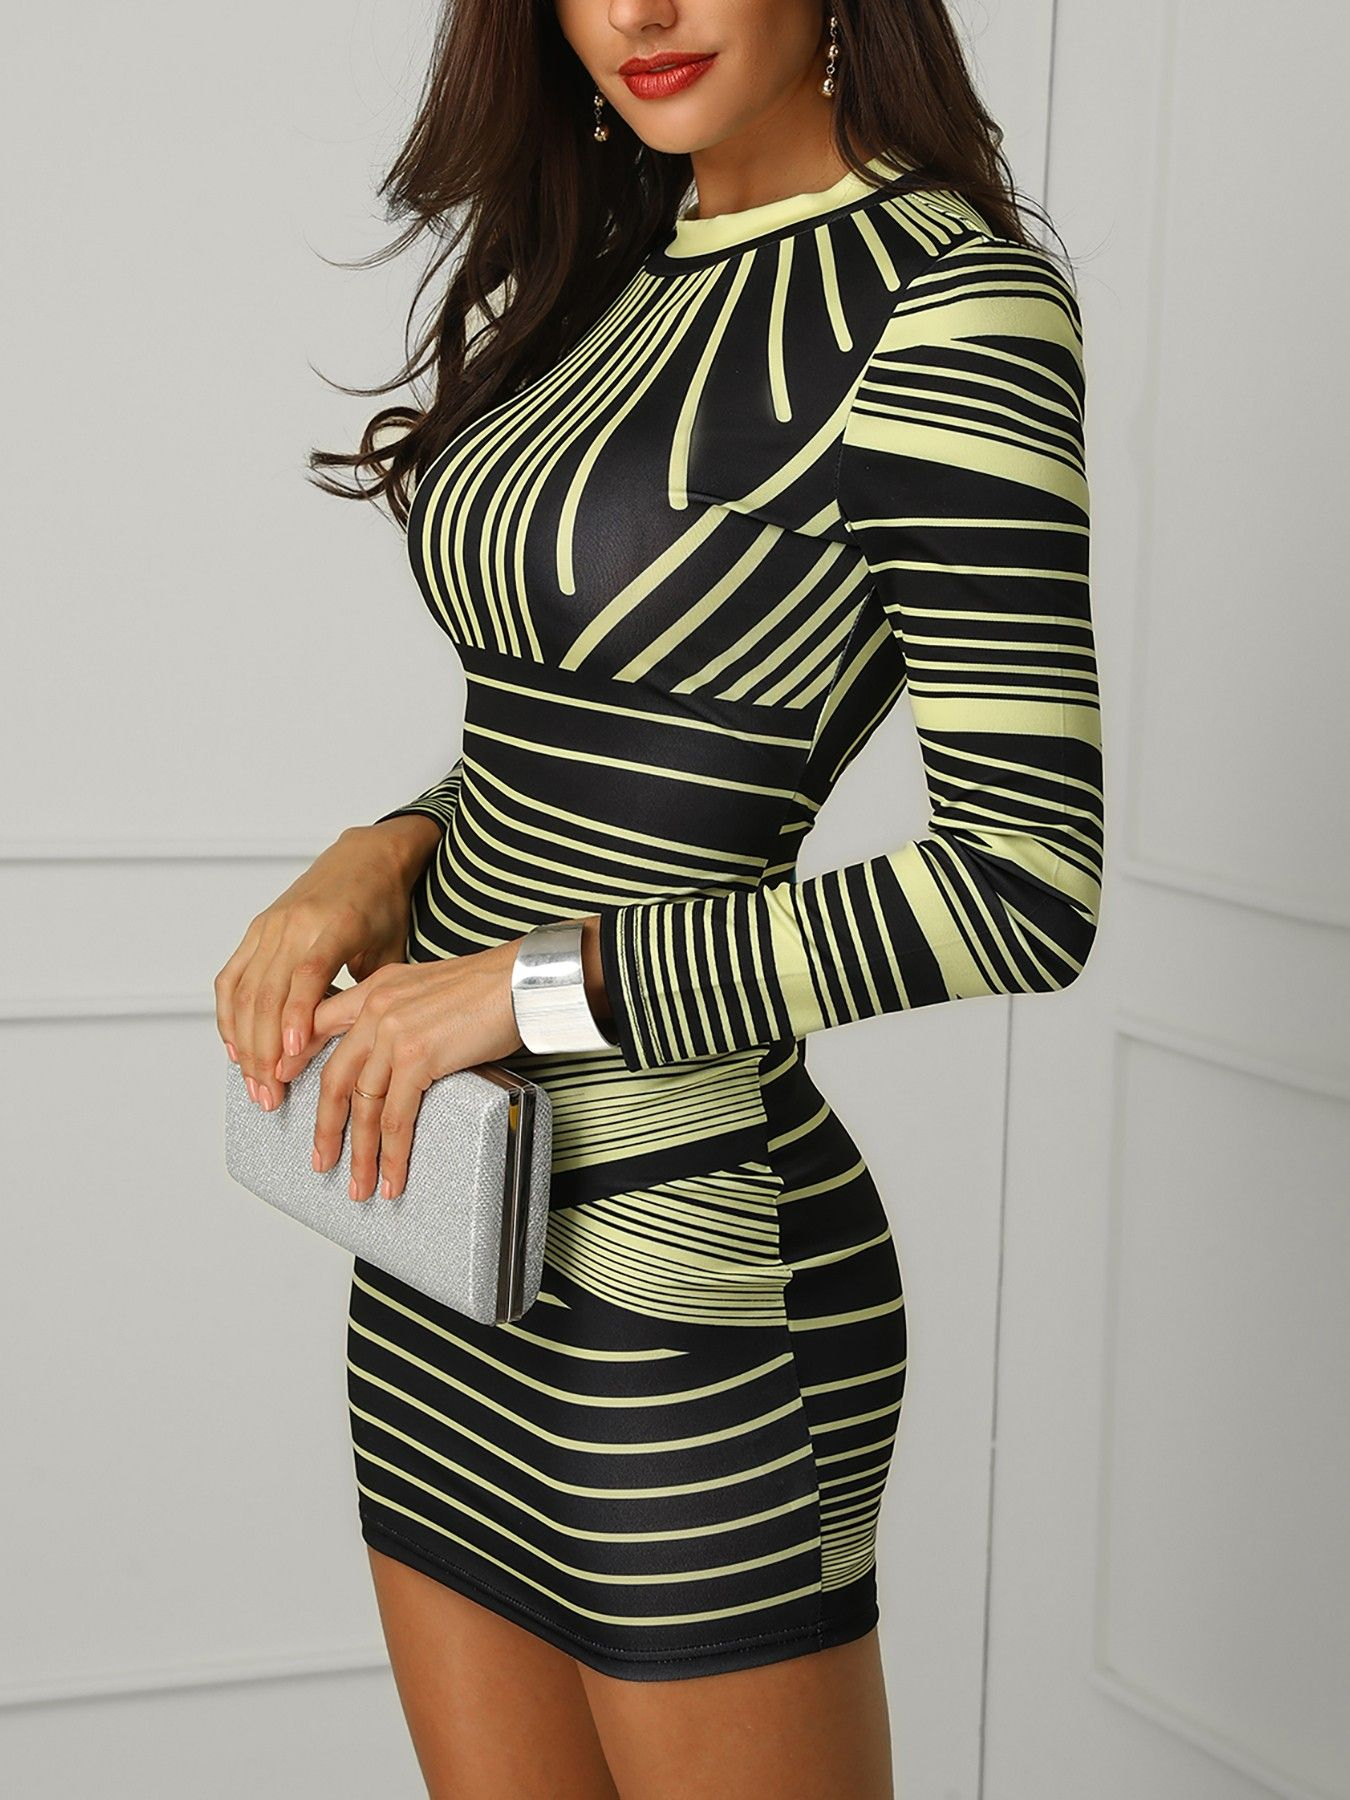 Shop Bodycon Dresses One Sleeve Cut Out Bodycon Dress. Above Knee Long  Sleeve Pullover Regular Women s Bodycon Dress. Gradient Color Striped  Bodycon Dress ... 4af5a2b21